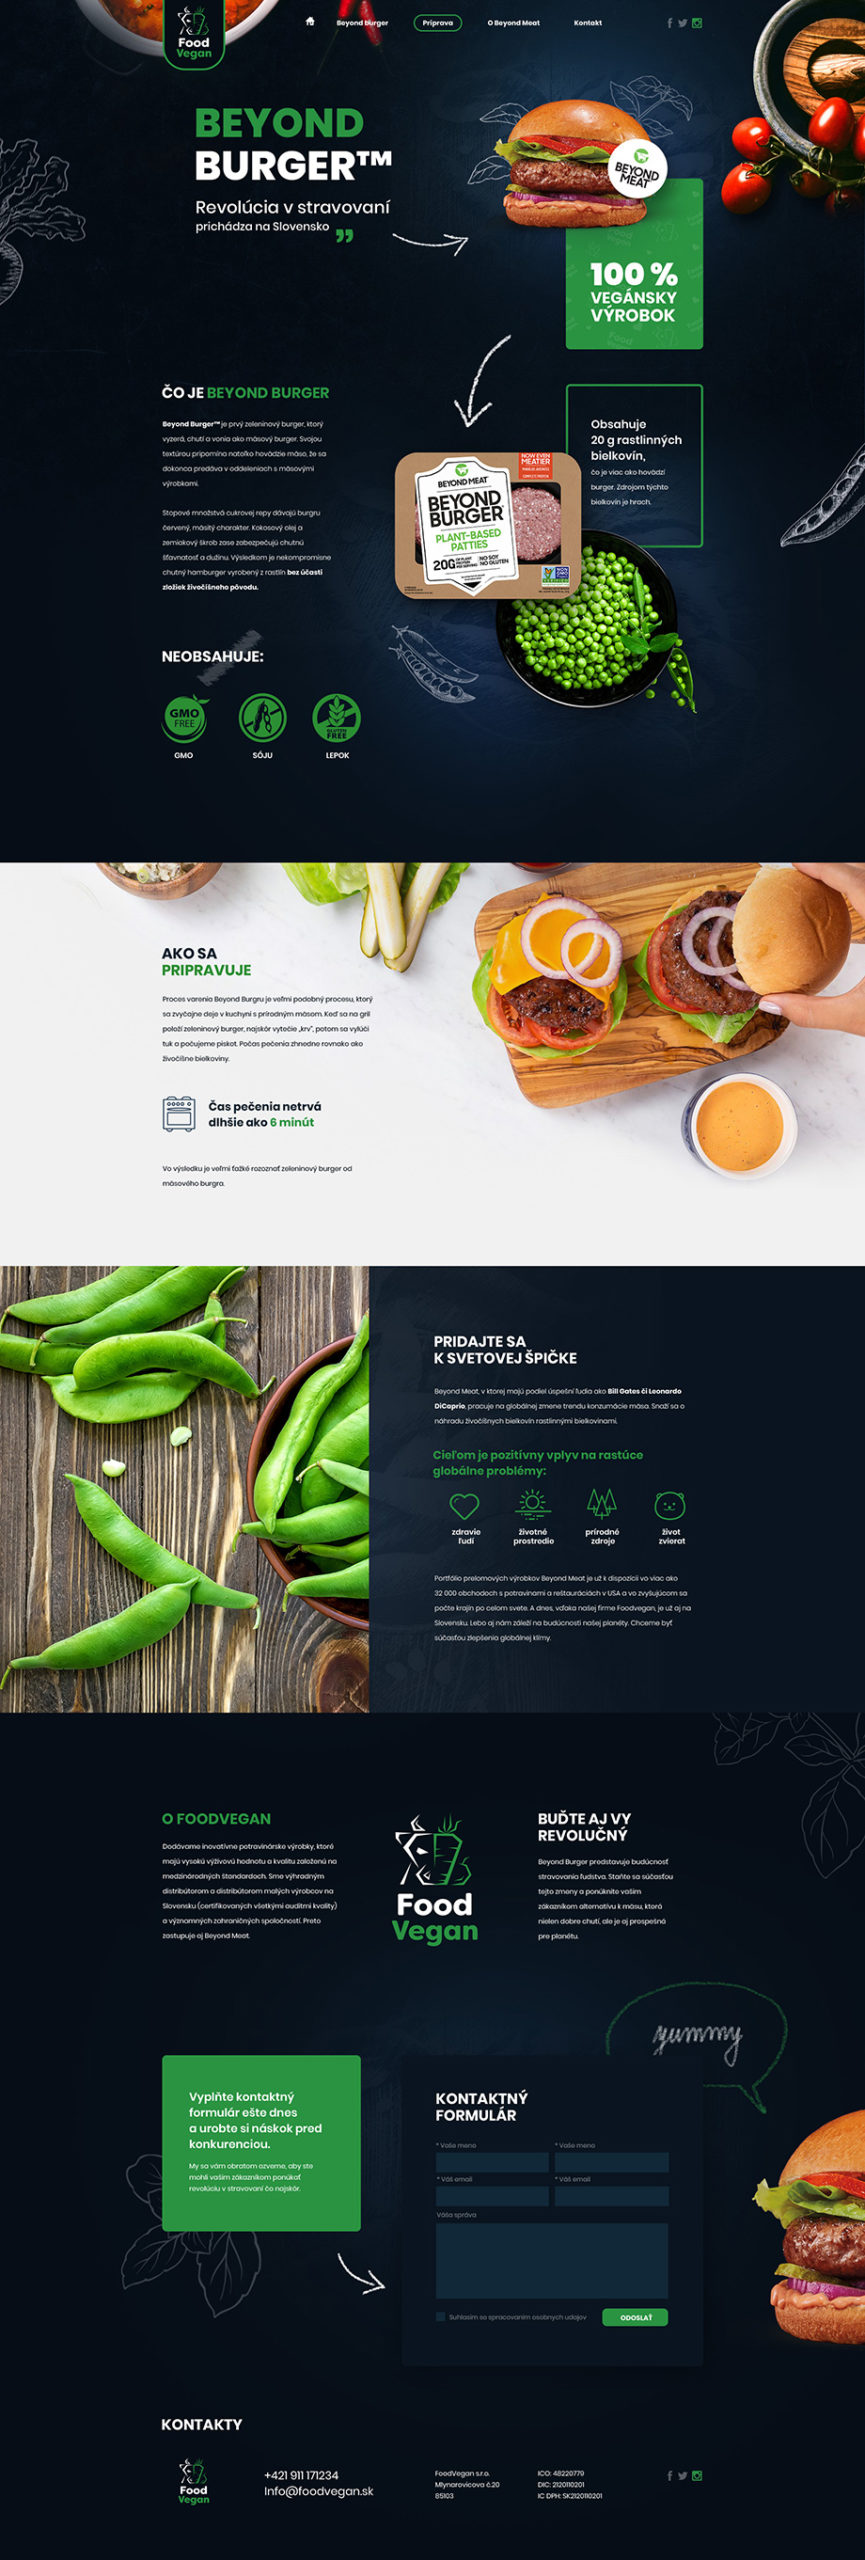 FoodVegan - Web design